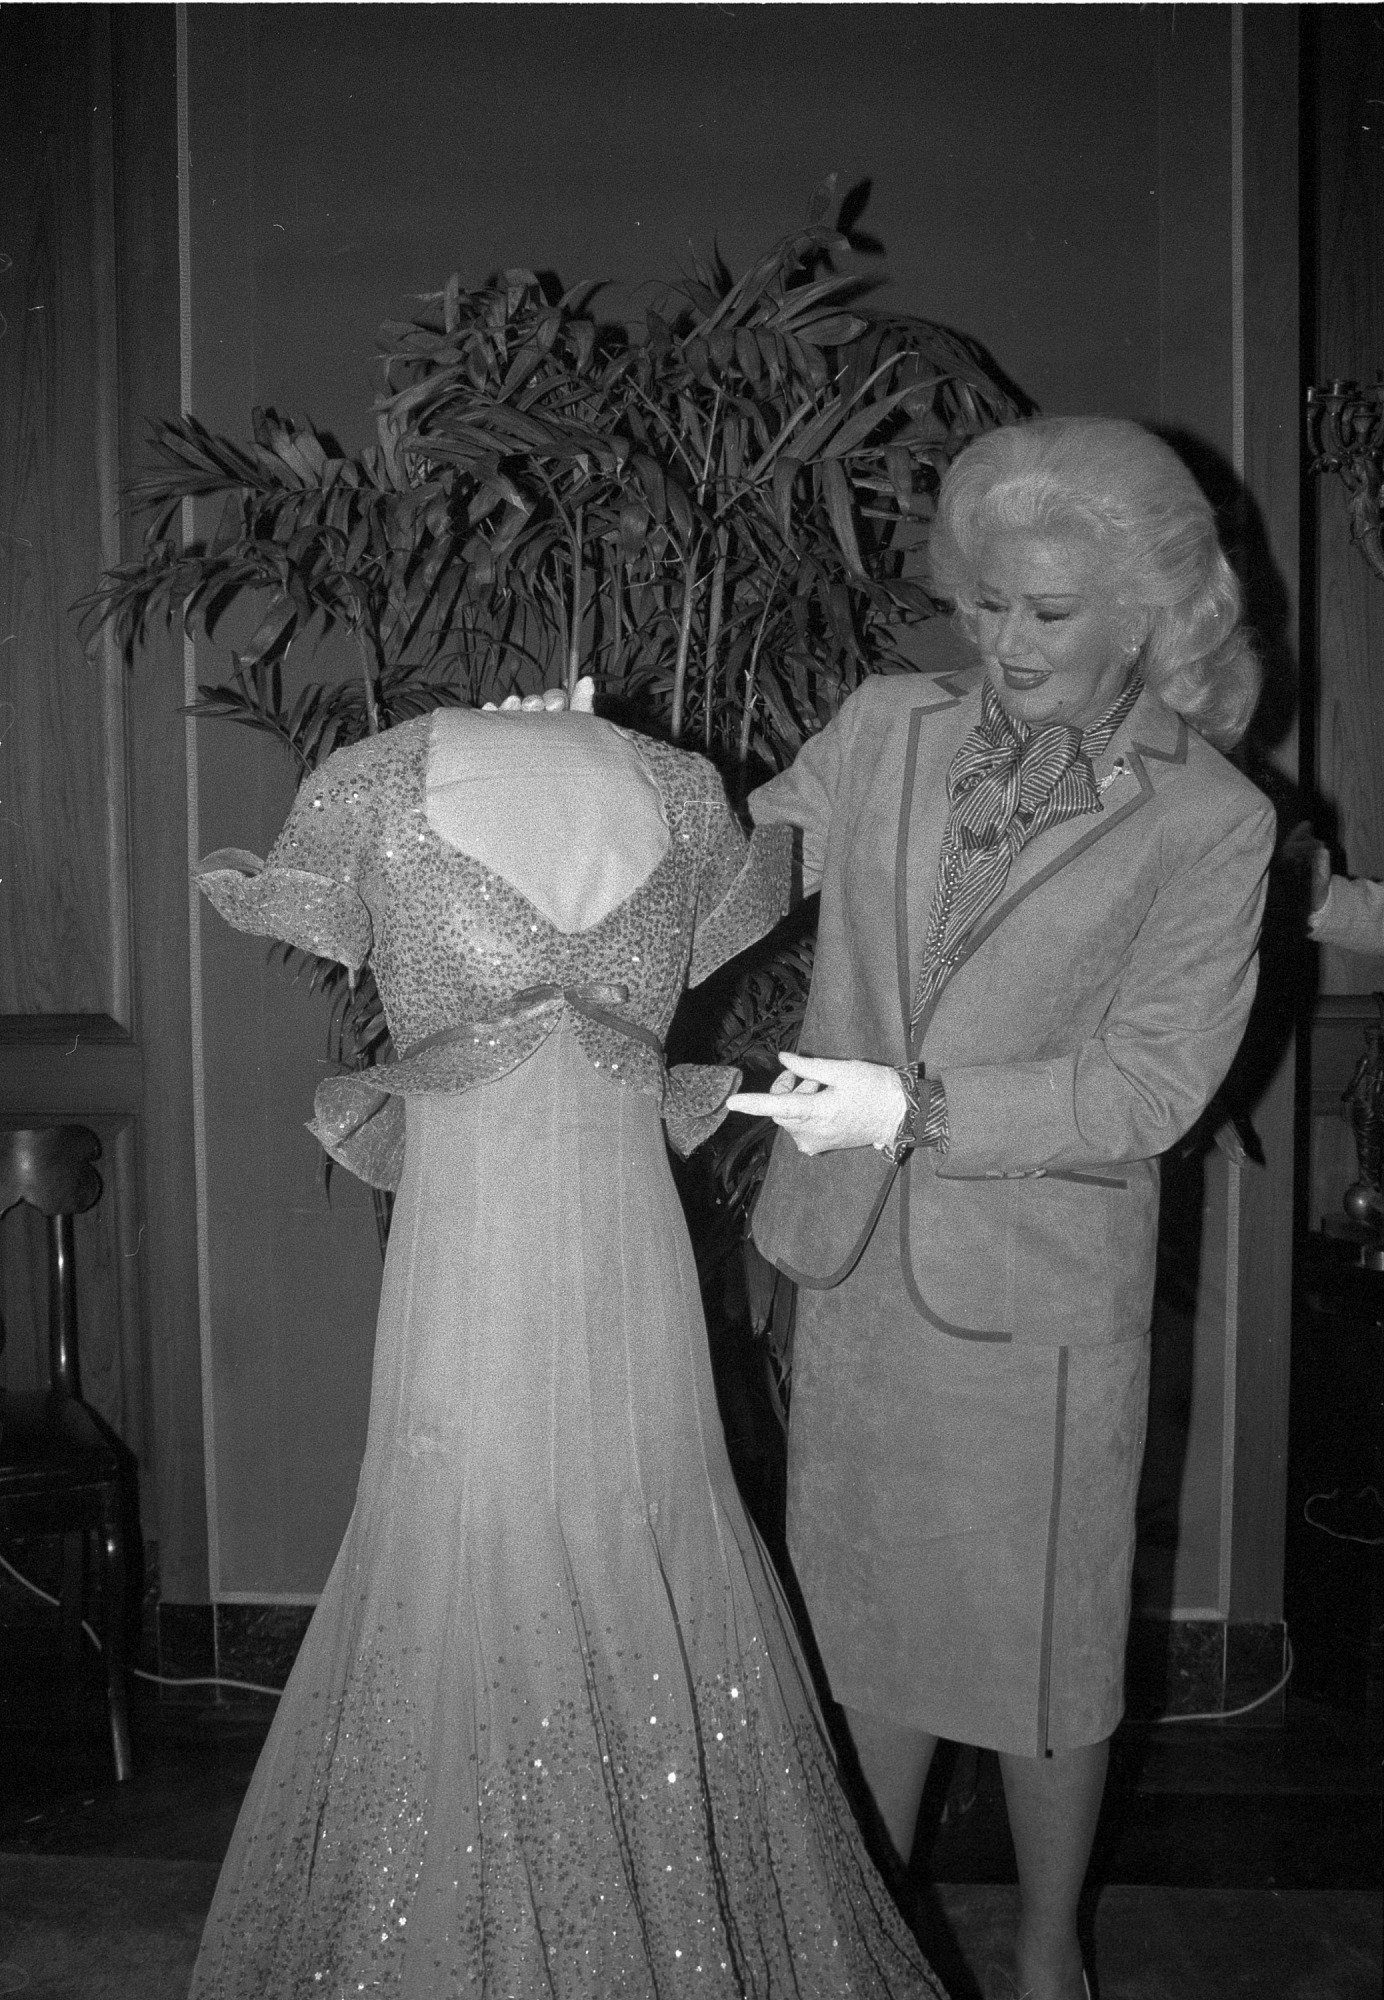 Ginger Rogers at NMAH, by Tinsley, Jeff, 1984, Smithsonian Archives - History Div, 84-5647-21.